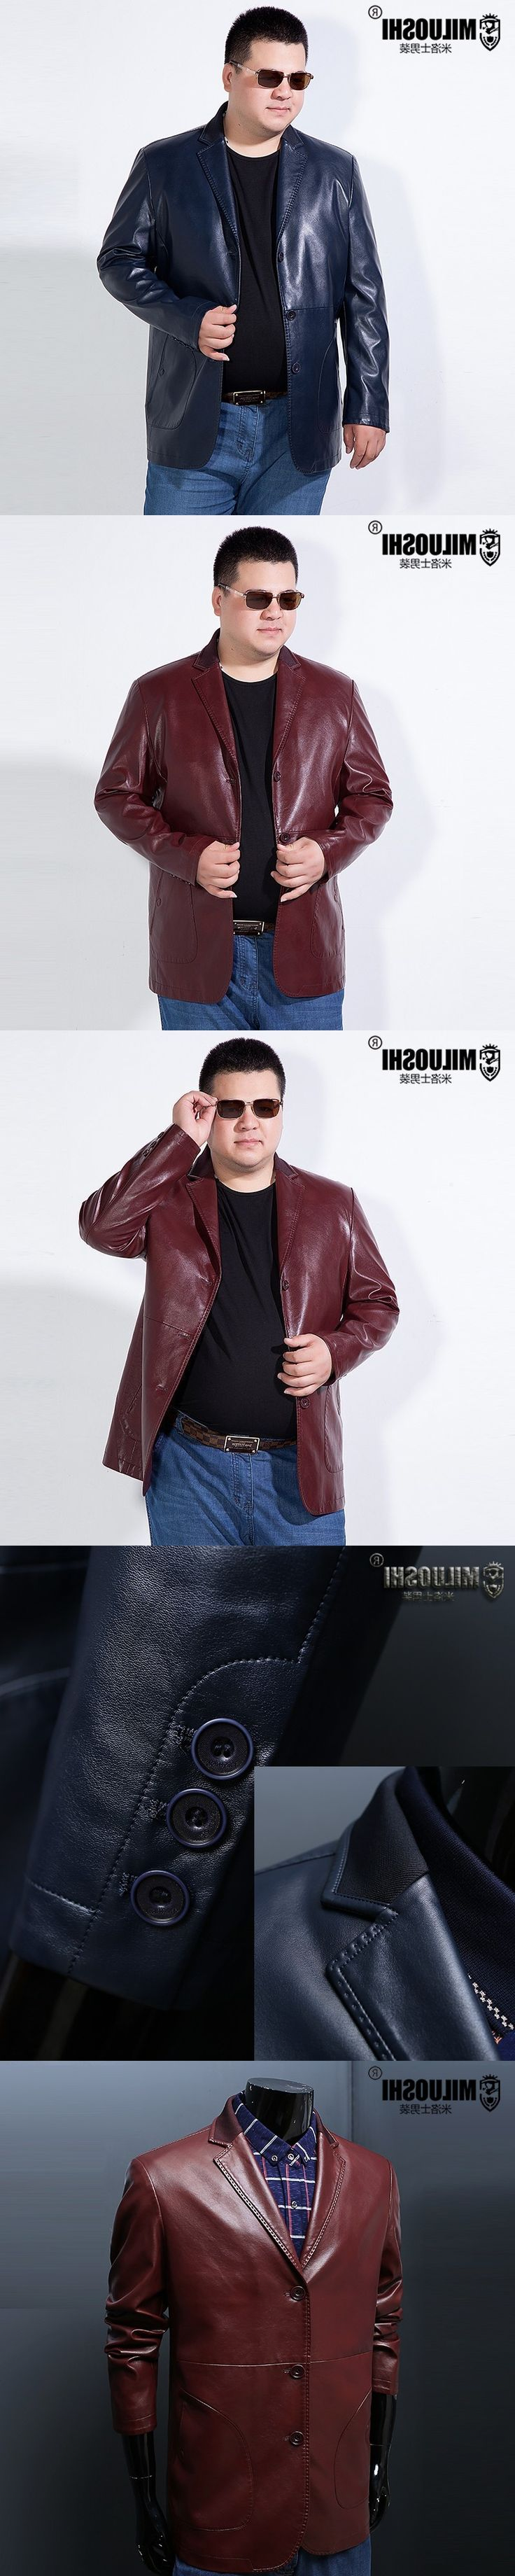 new 8XL 6XL 5X Men's Leather Jackets Spring and Autumn RED Leather Jacket For Men Faux Leather Coats Loose PU Jackets Overcoats